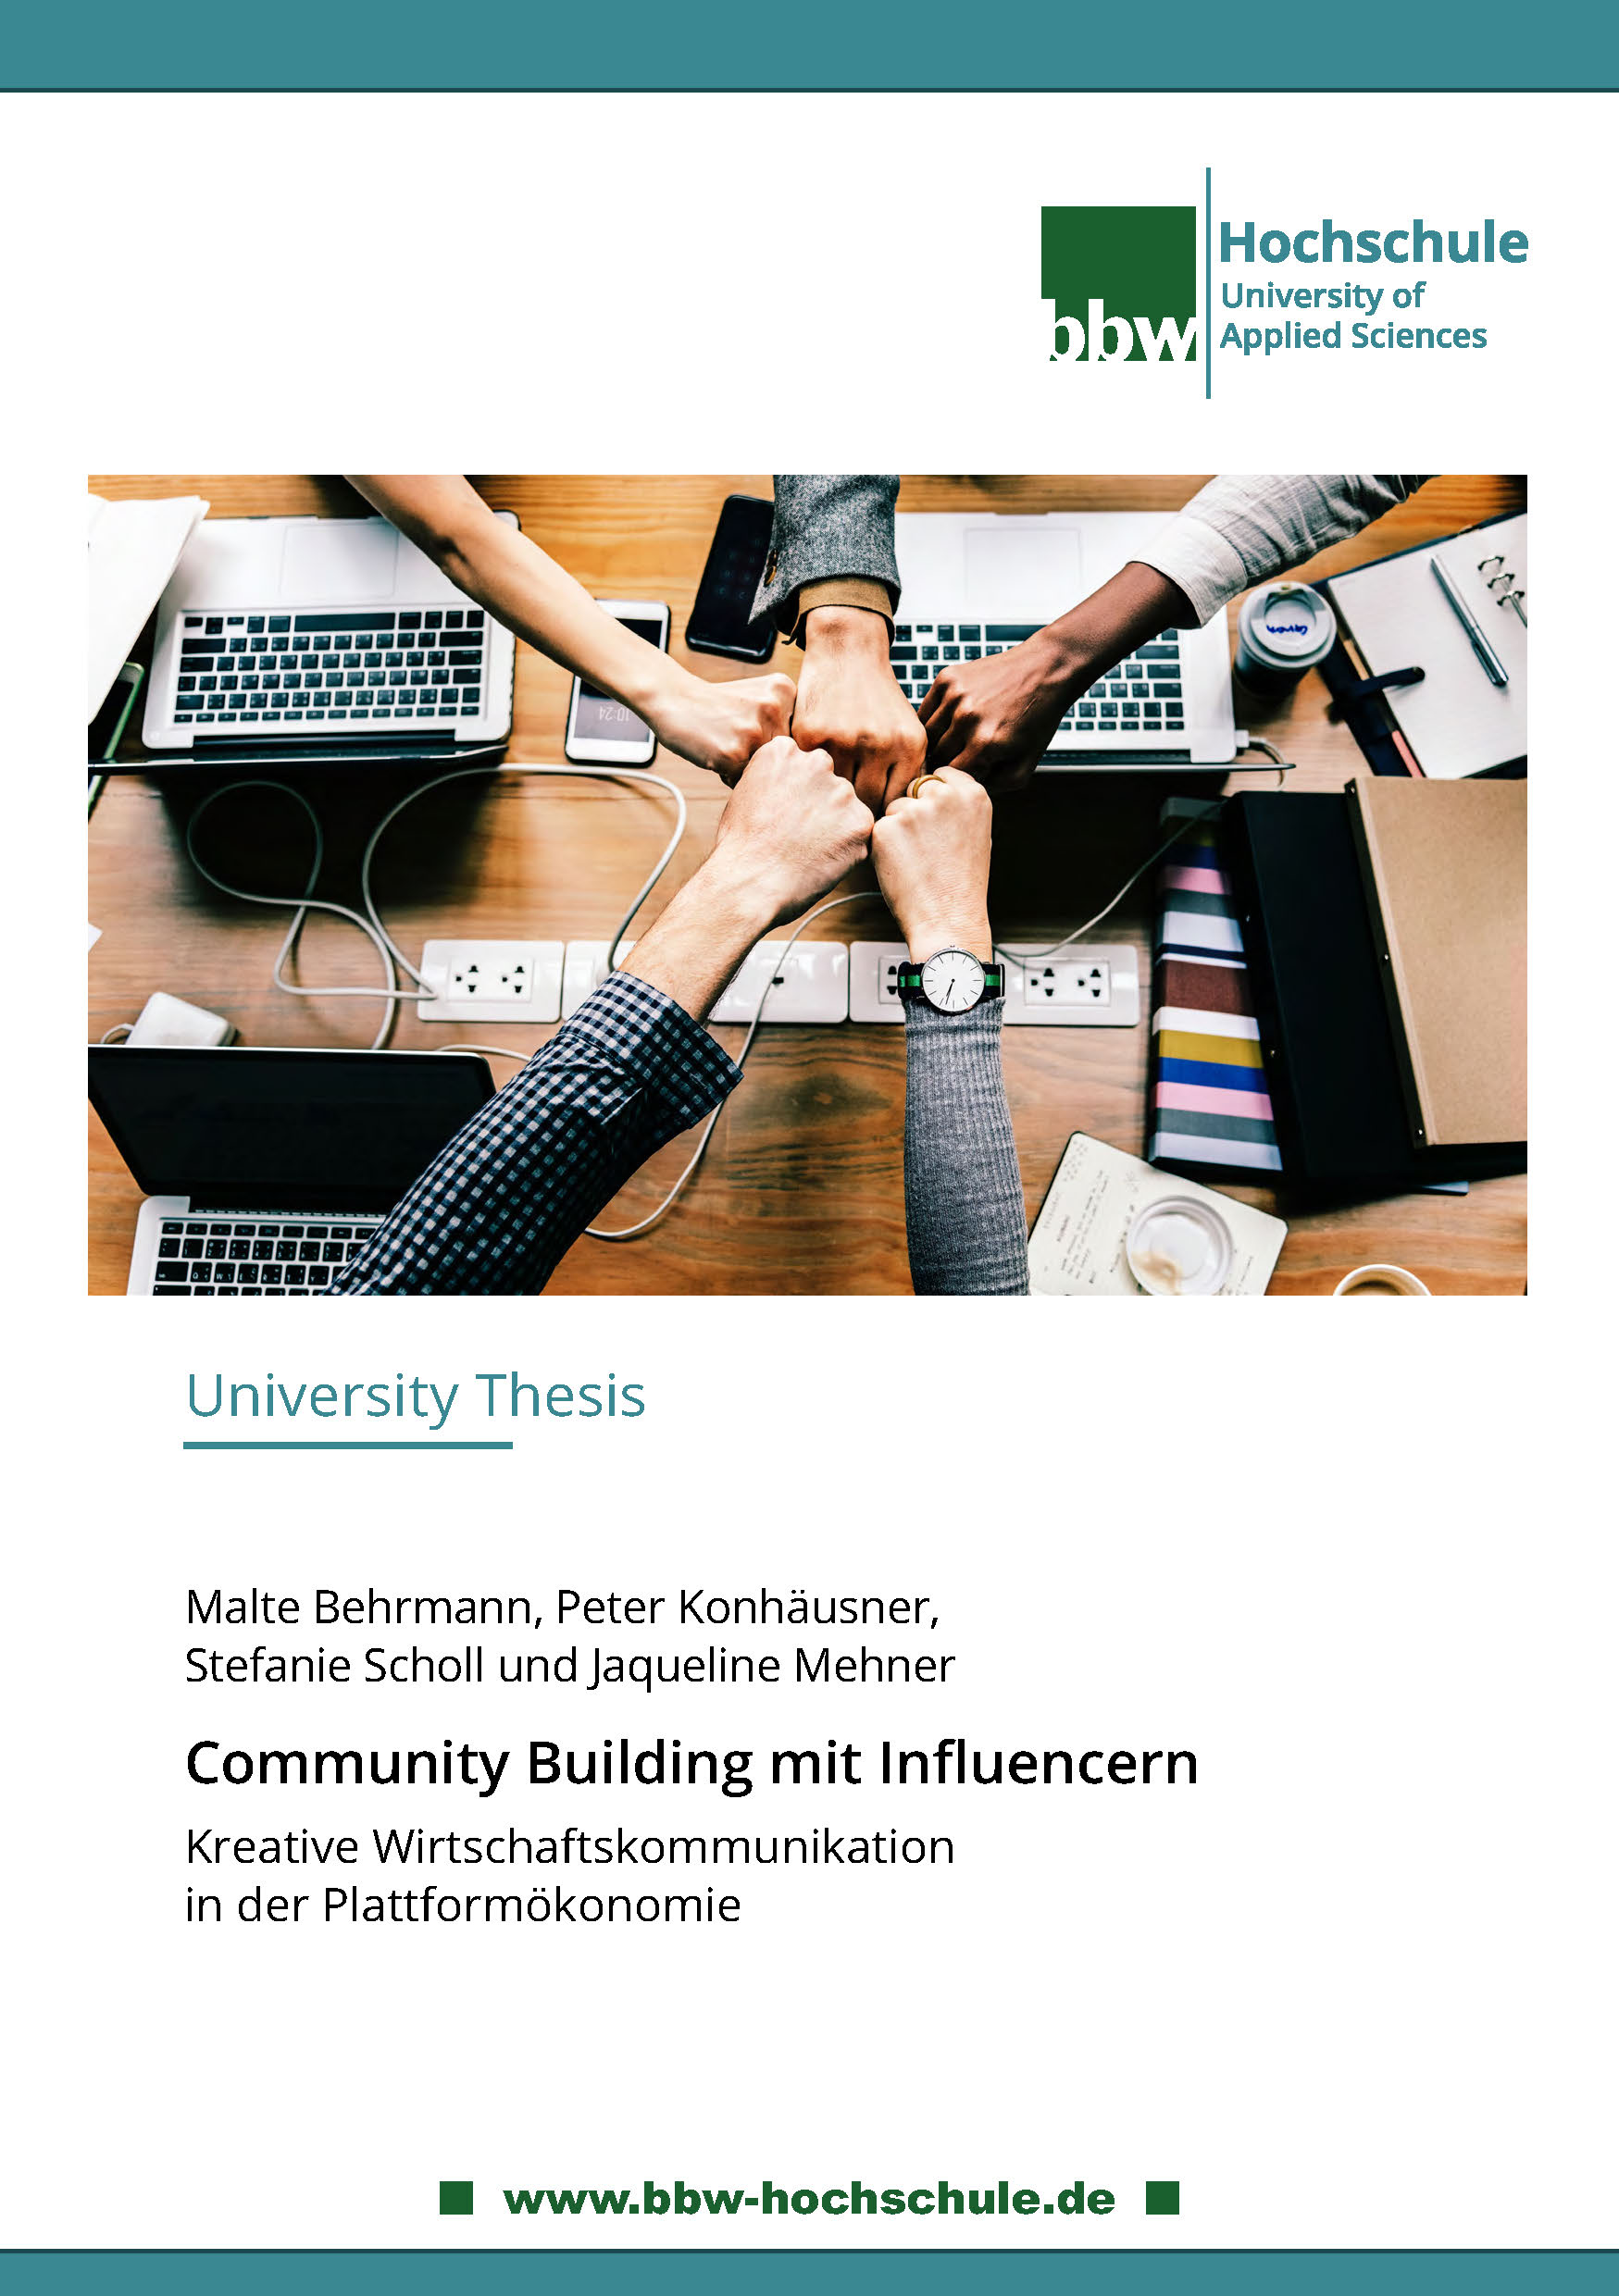 Community Building mit Influencern